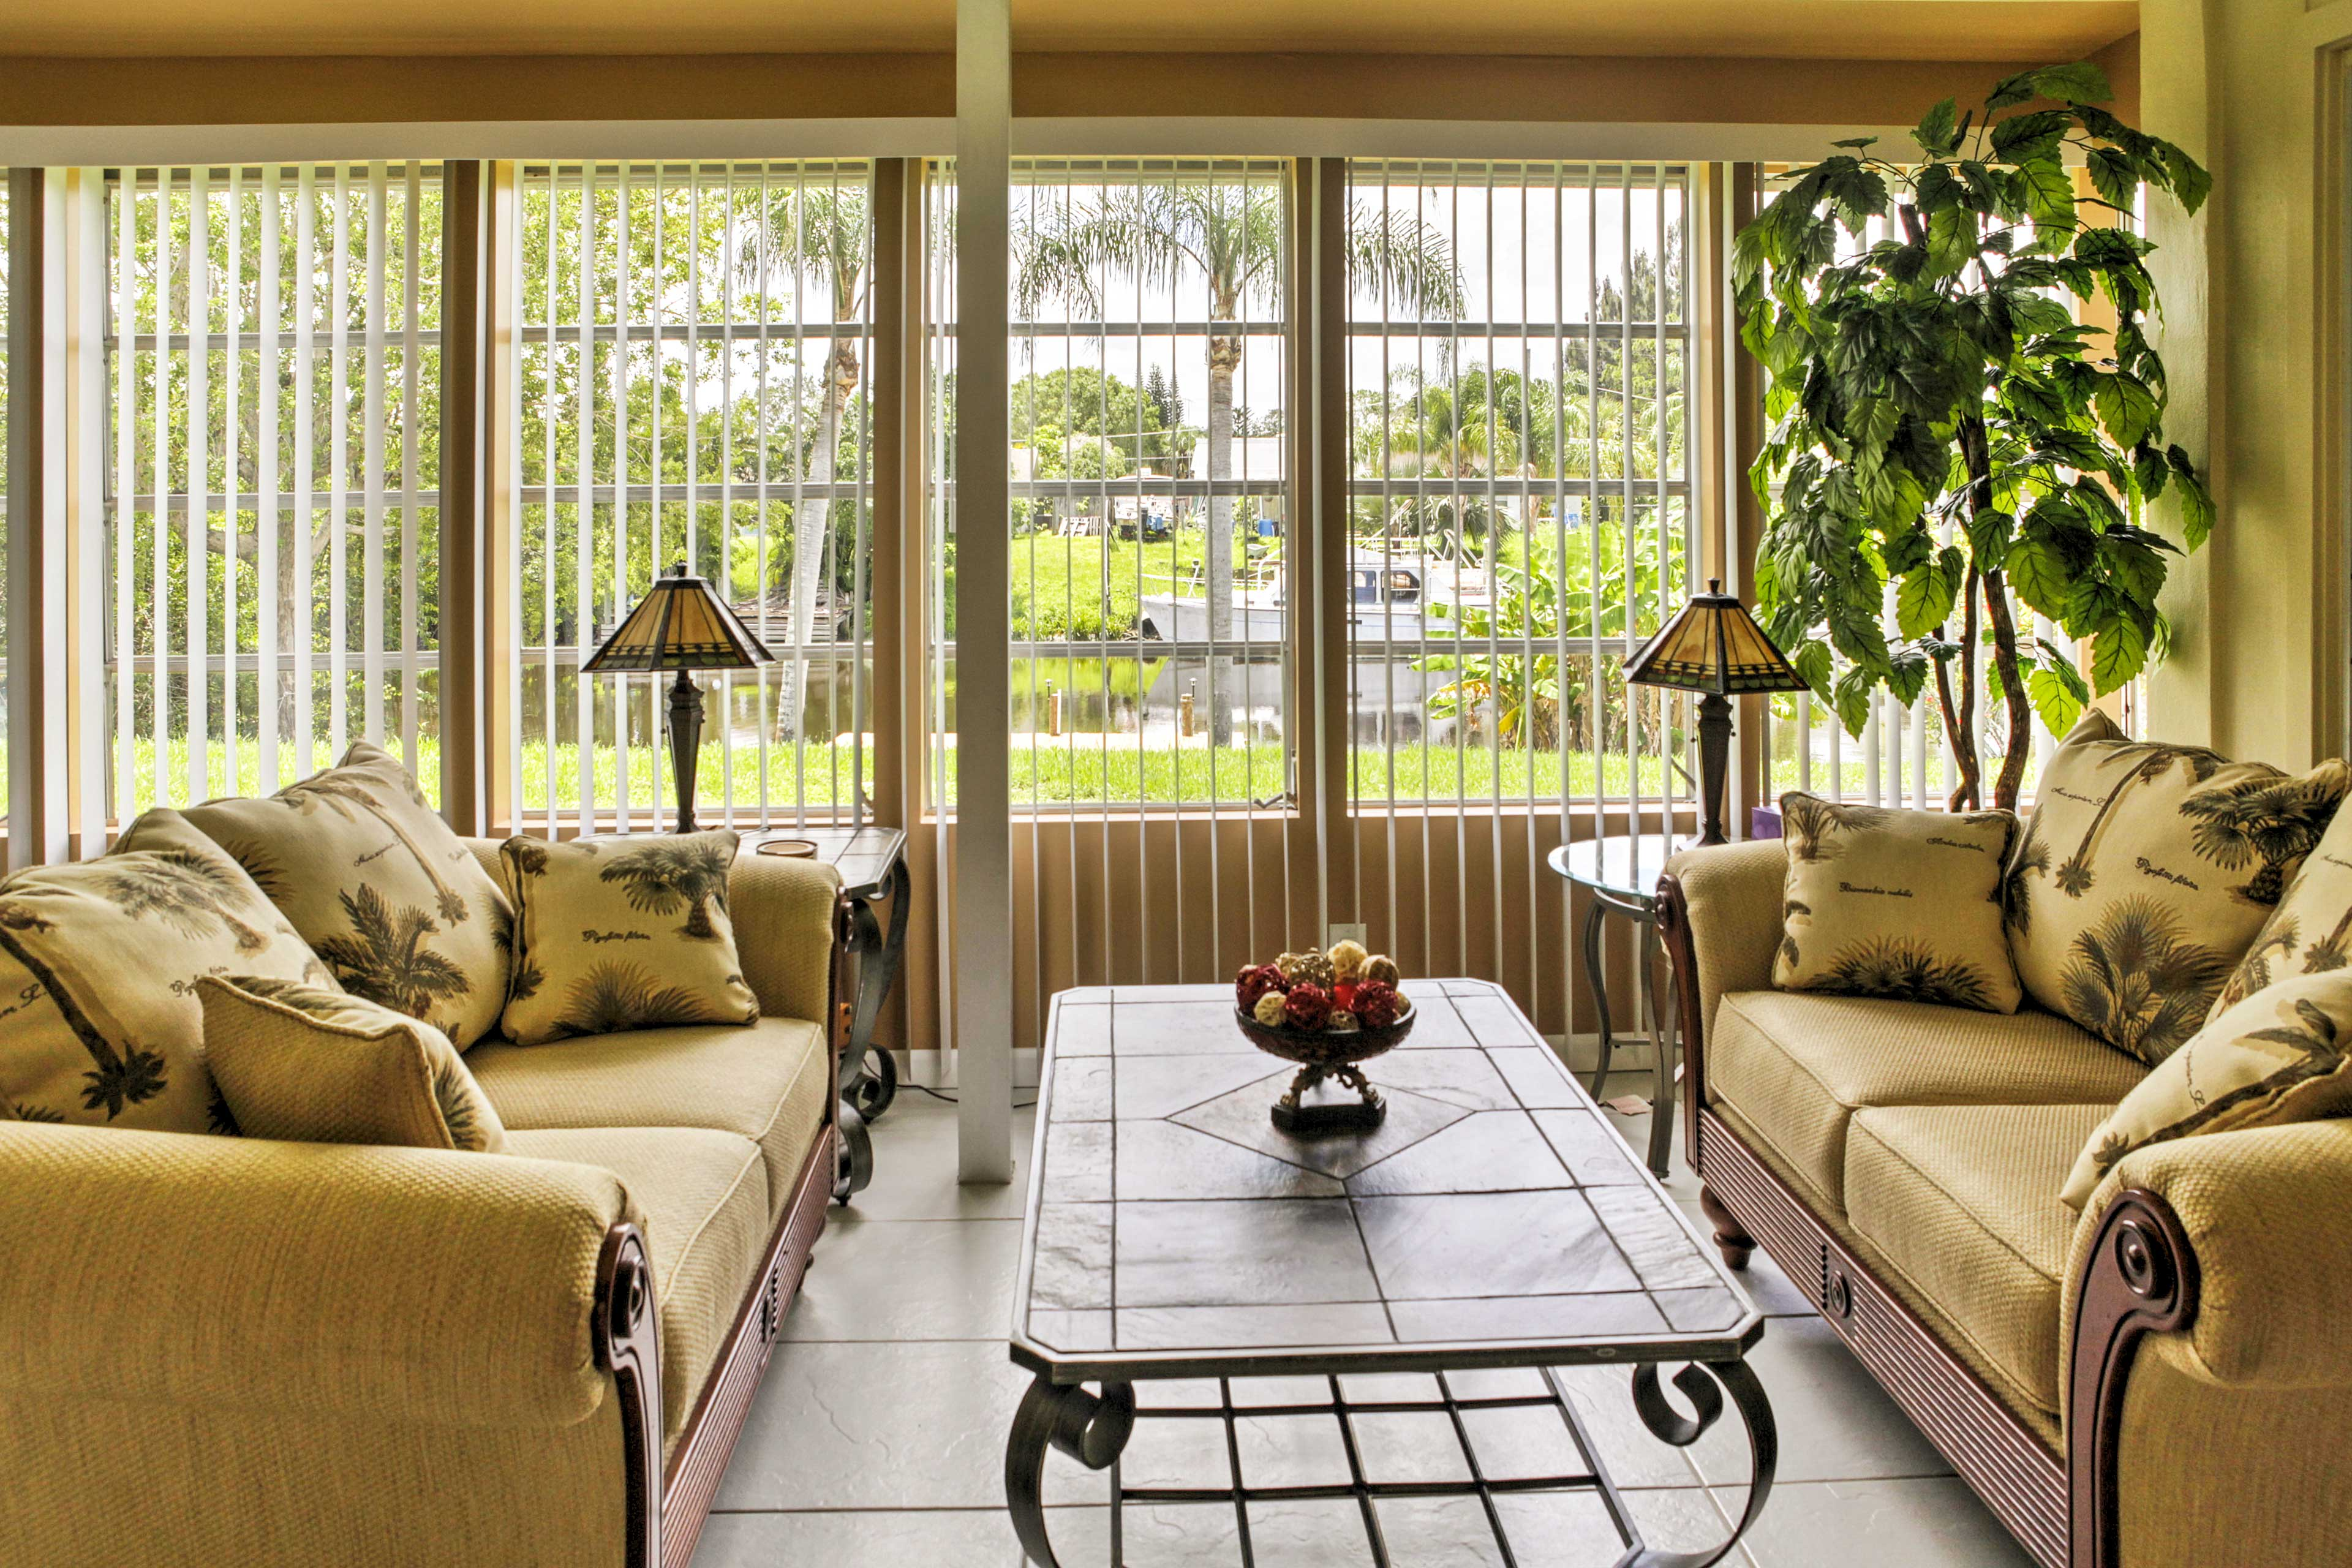 Relish in deep conversation while you unwind in the sitting room.